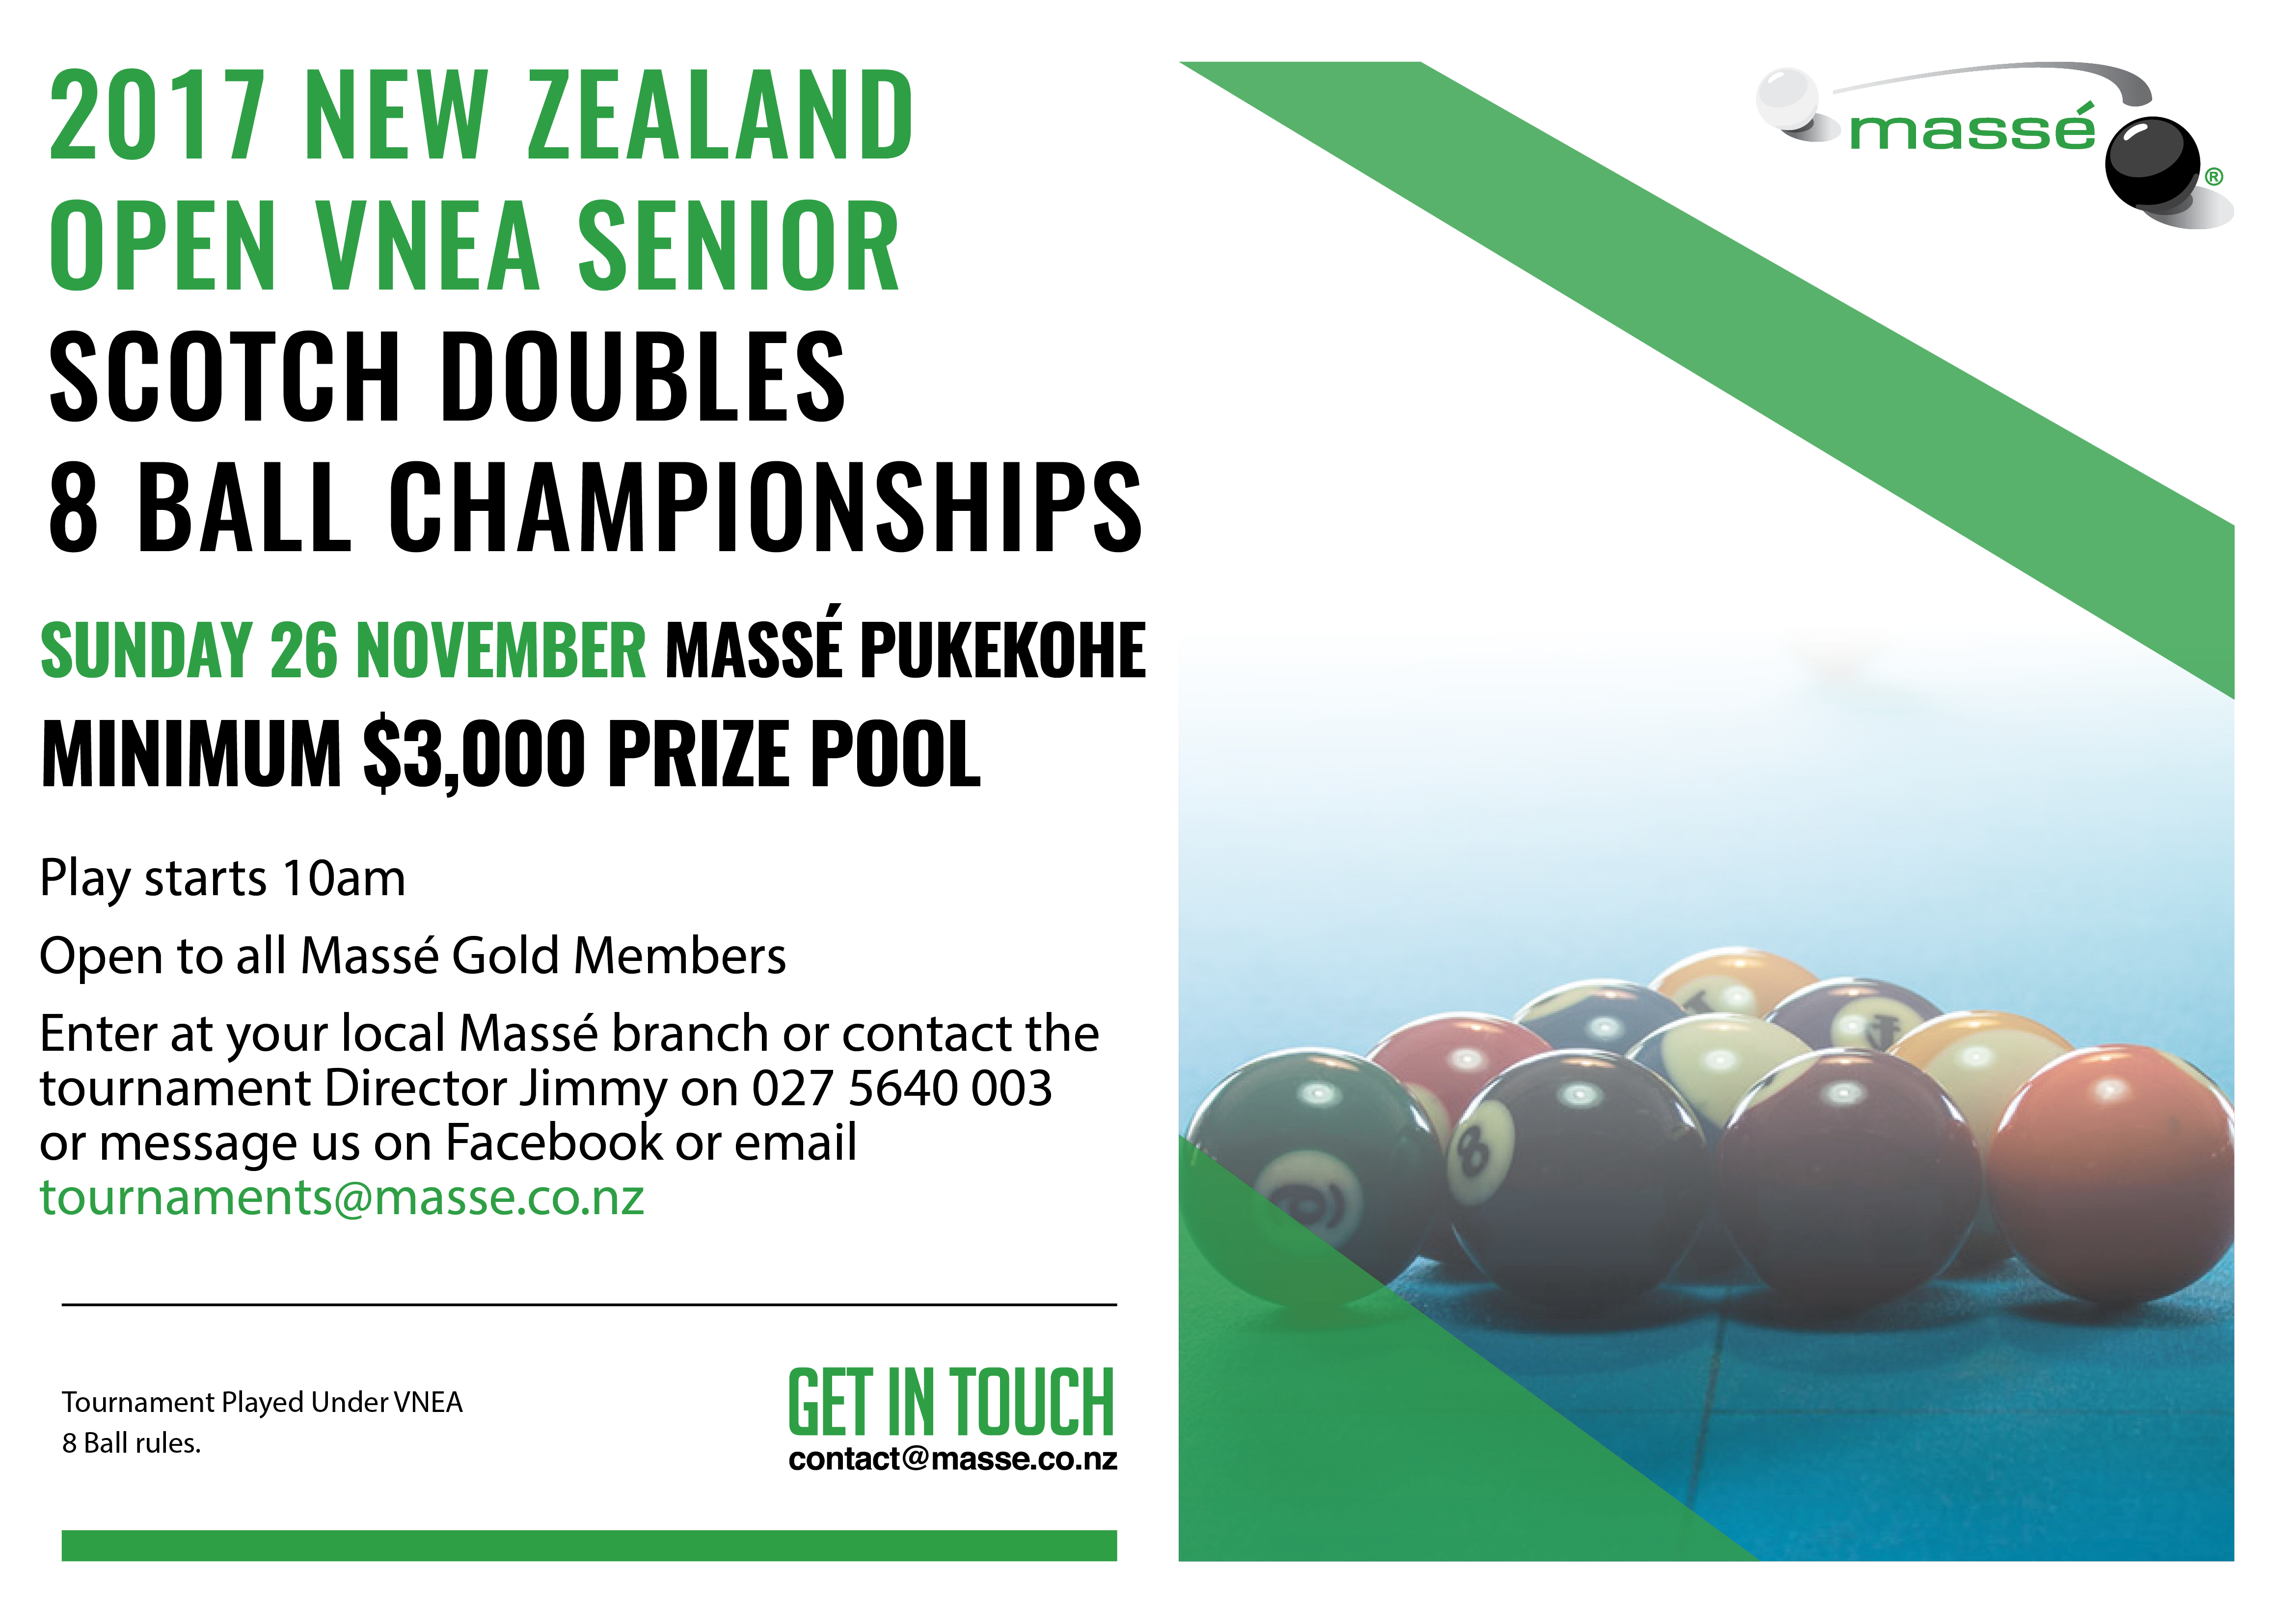 New Zealand Open VNEA Scotch Doubles 8 Ball Championships 2017